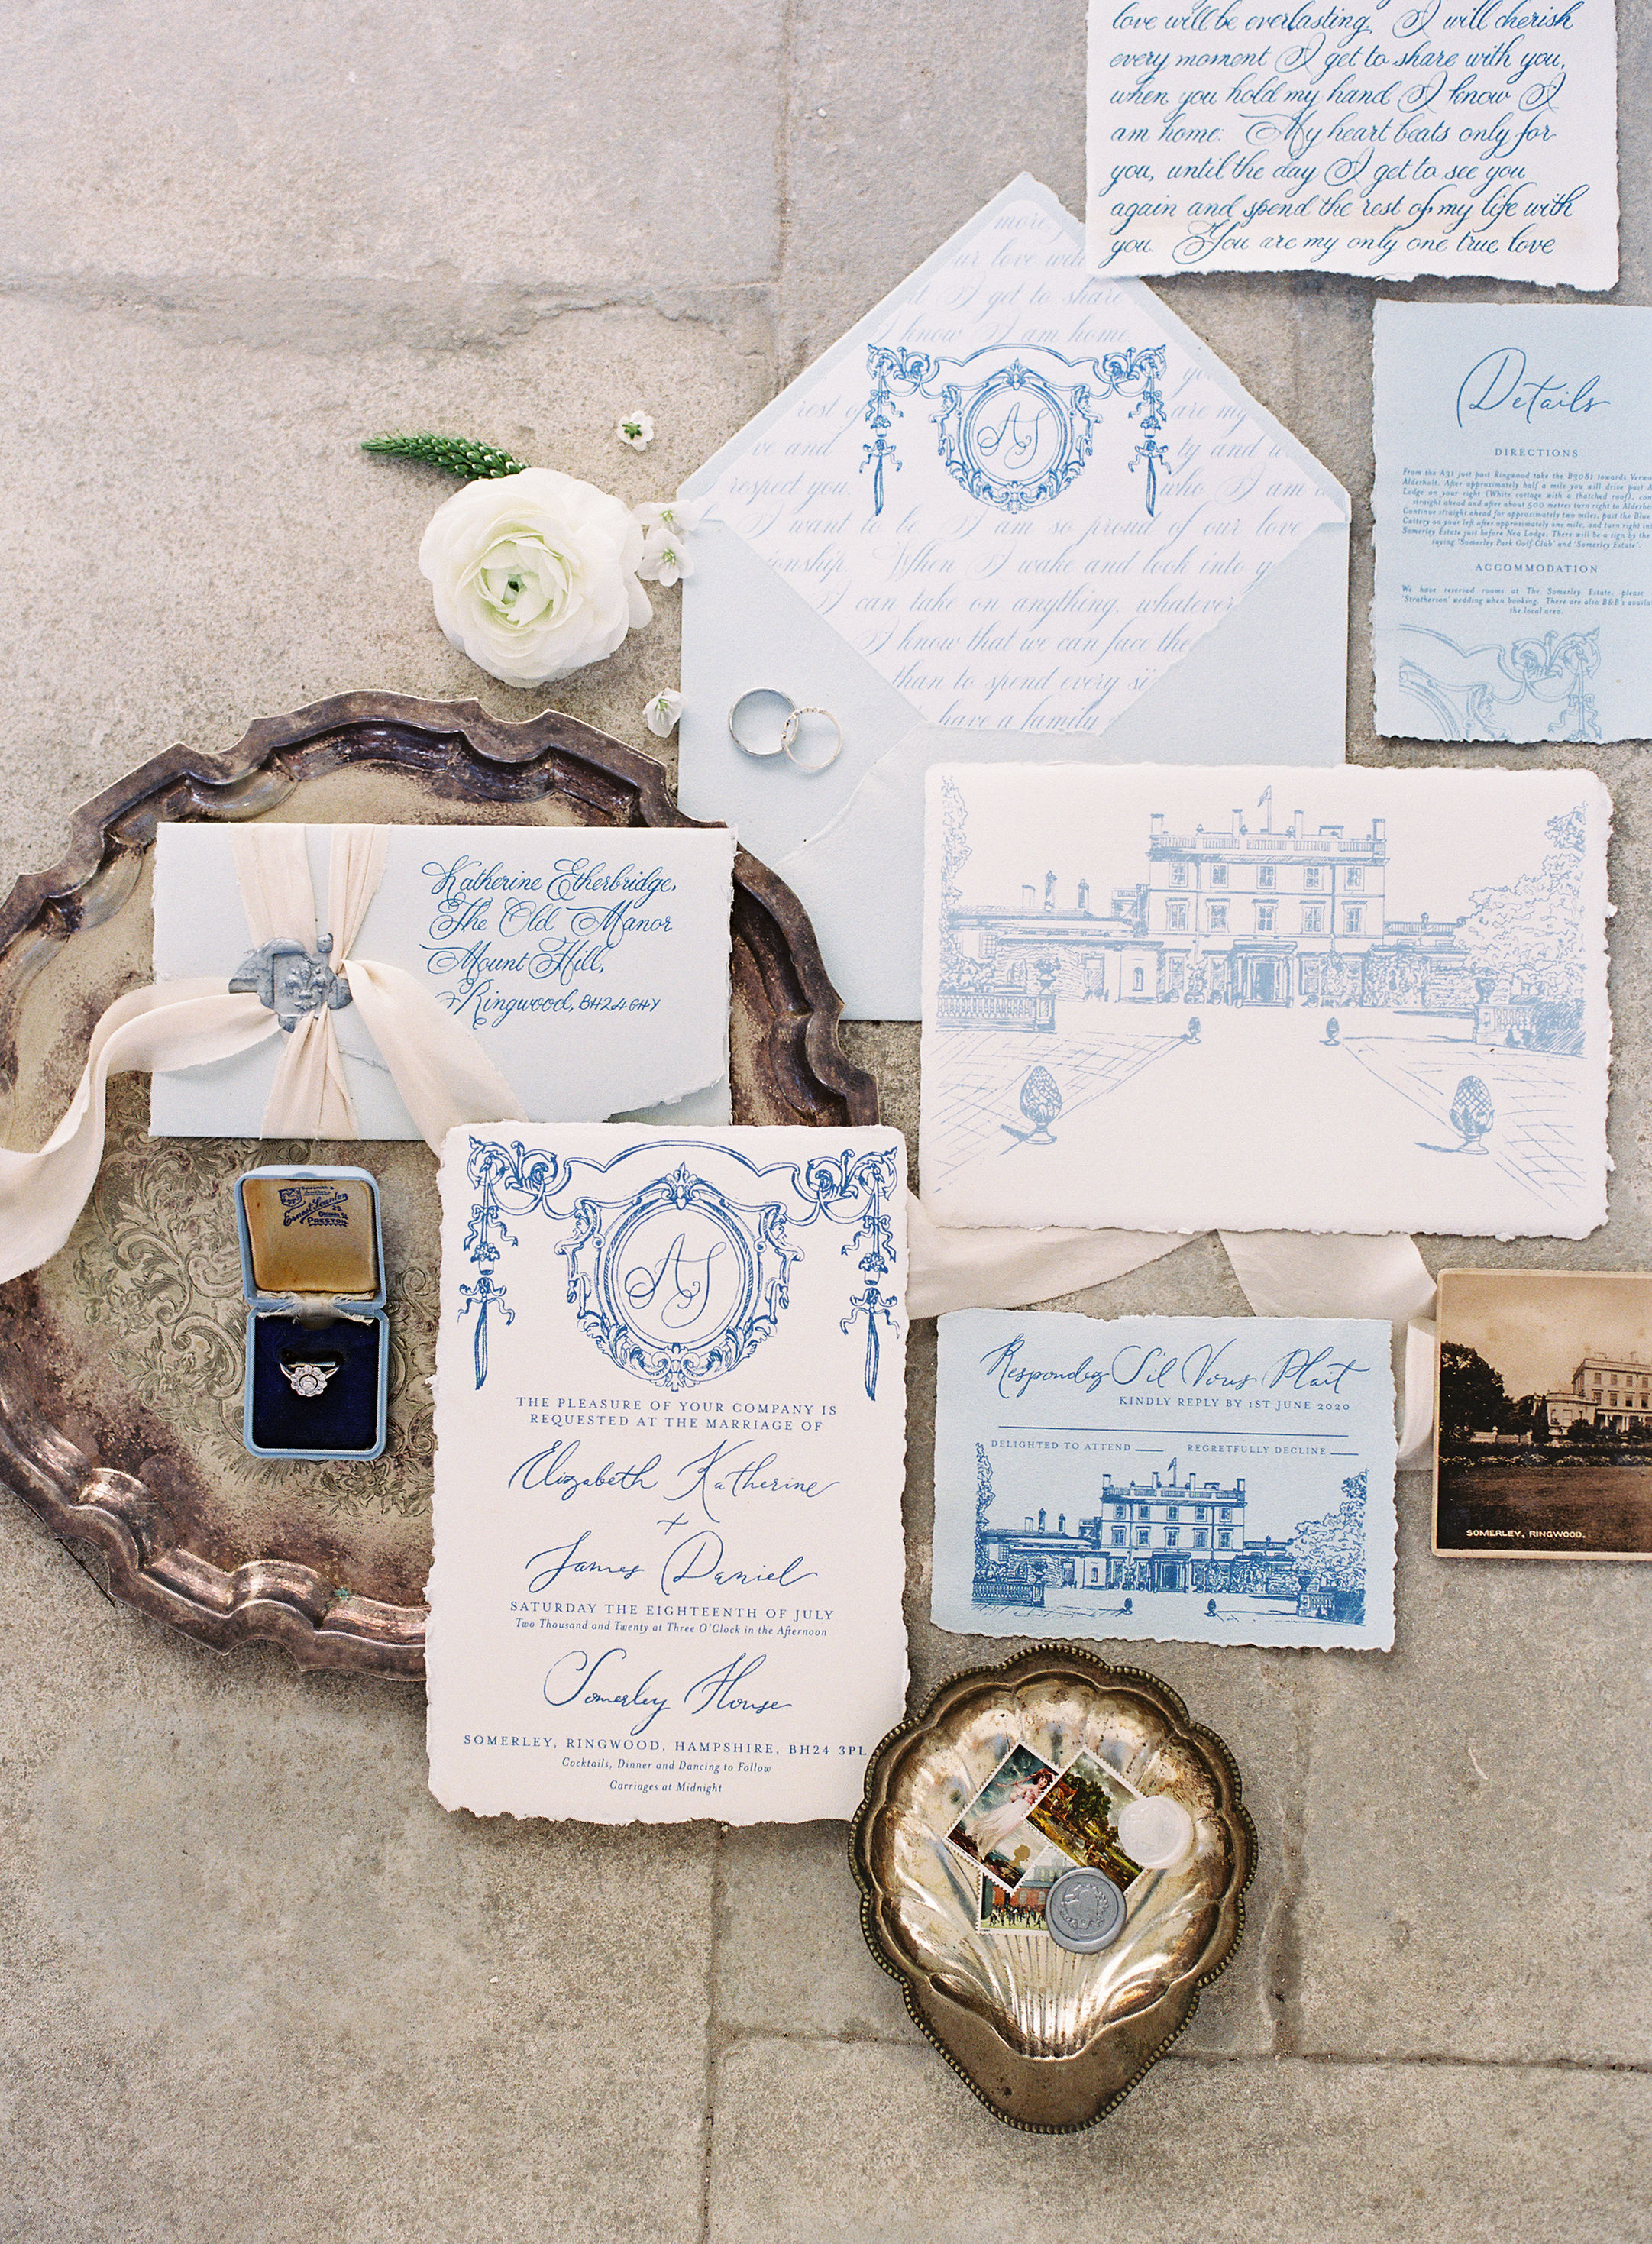 Fine Art Calligraphy wedding stationery suite for Somerley House on handmade paper with deckled edges. Photo by Camilla Arnhold